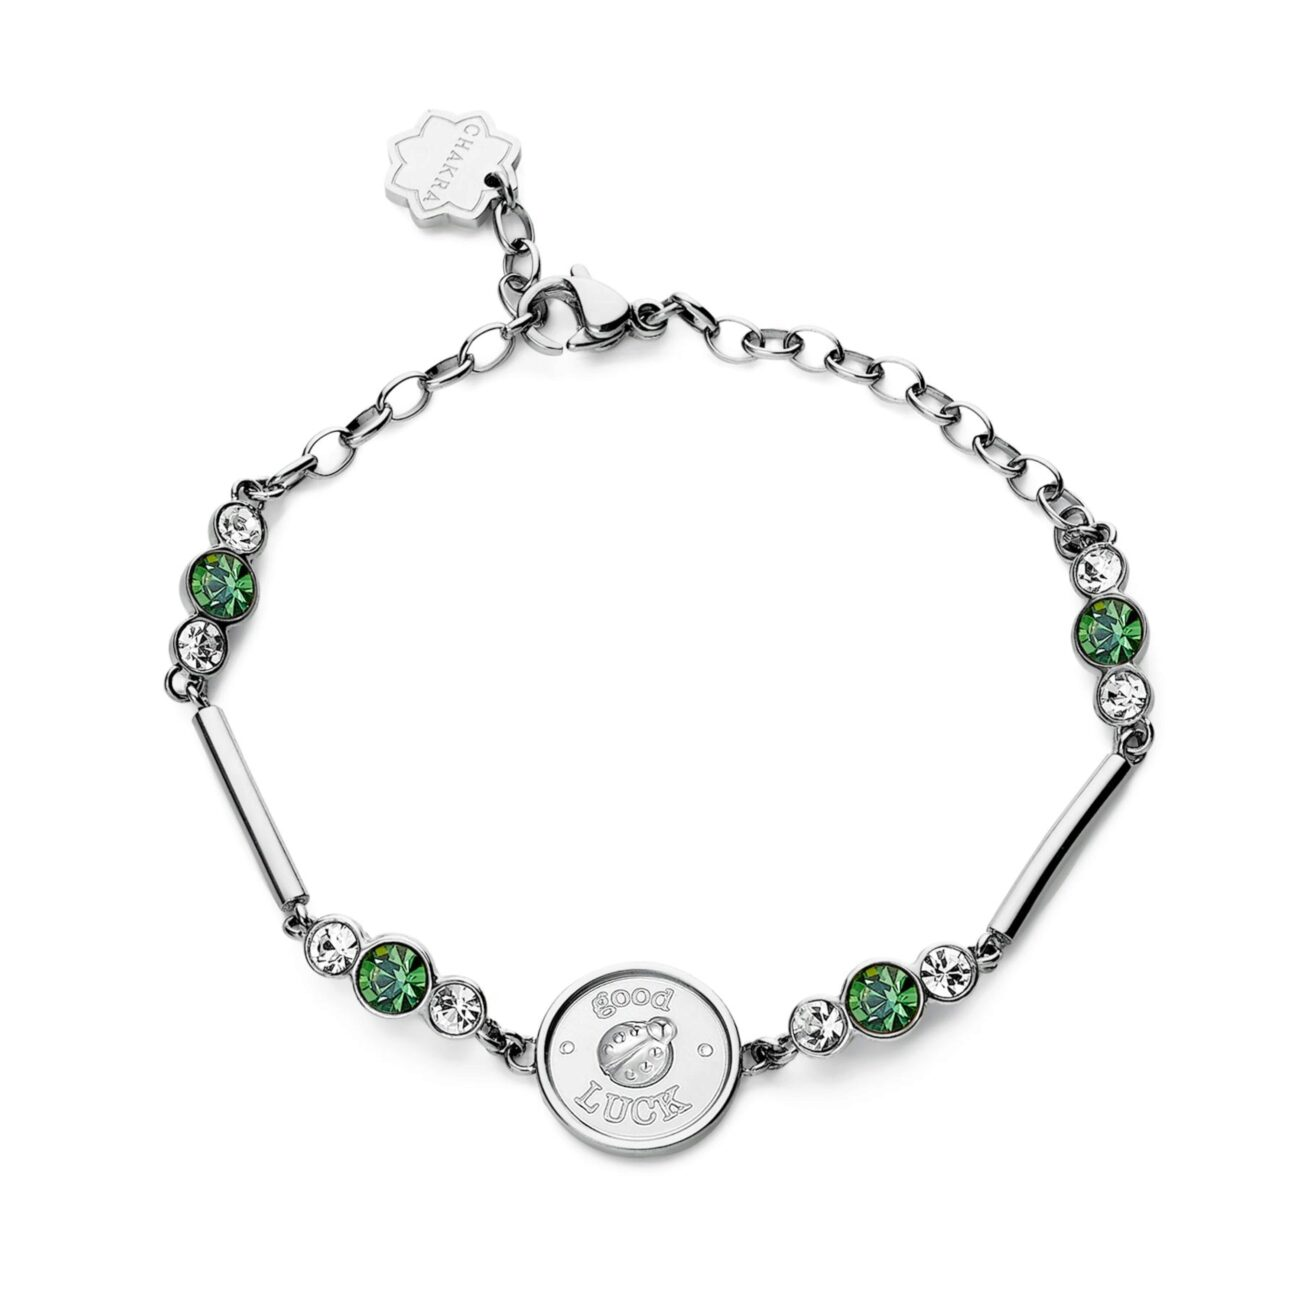 LADYBIRD: HAPPINESS, PROTECTION, LUCKENGRAVED: Good luck (front)-Luck (back)With its elegant, coloured livery that keeps predators at bay and protects its wings, the ladybird represents our need to defend that which we hold most dear so that we can be happy.317L stainless steel bracelet with ladybird, crystals and erinite crystals.